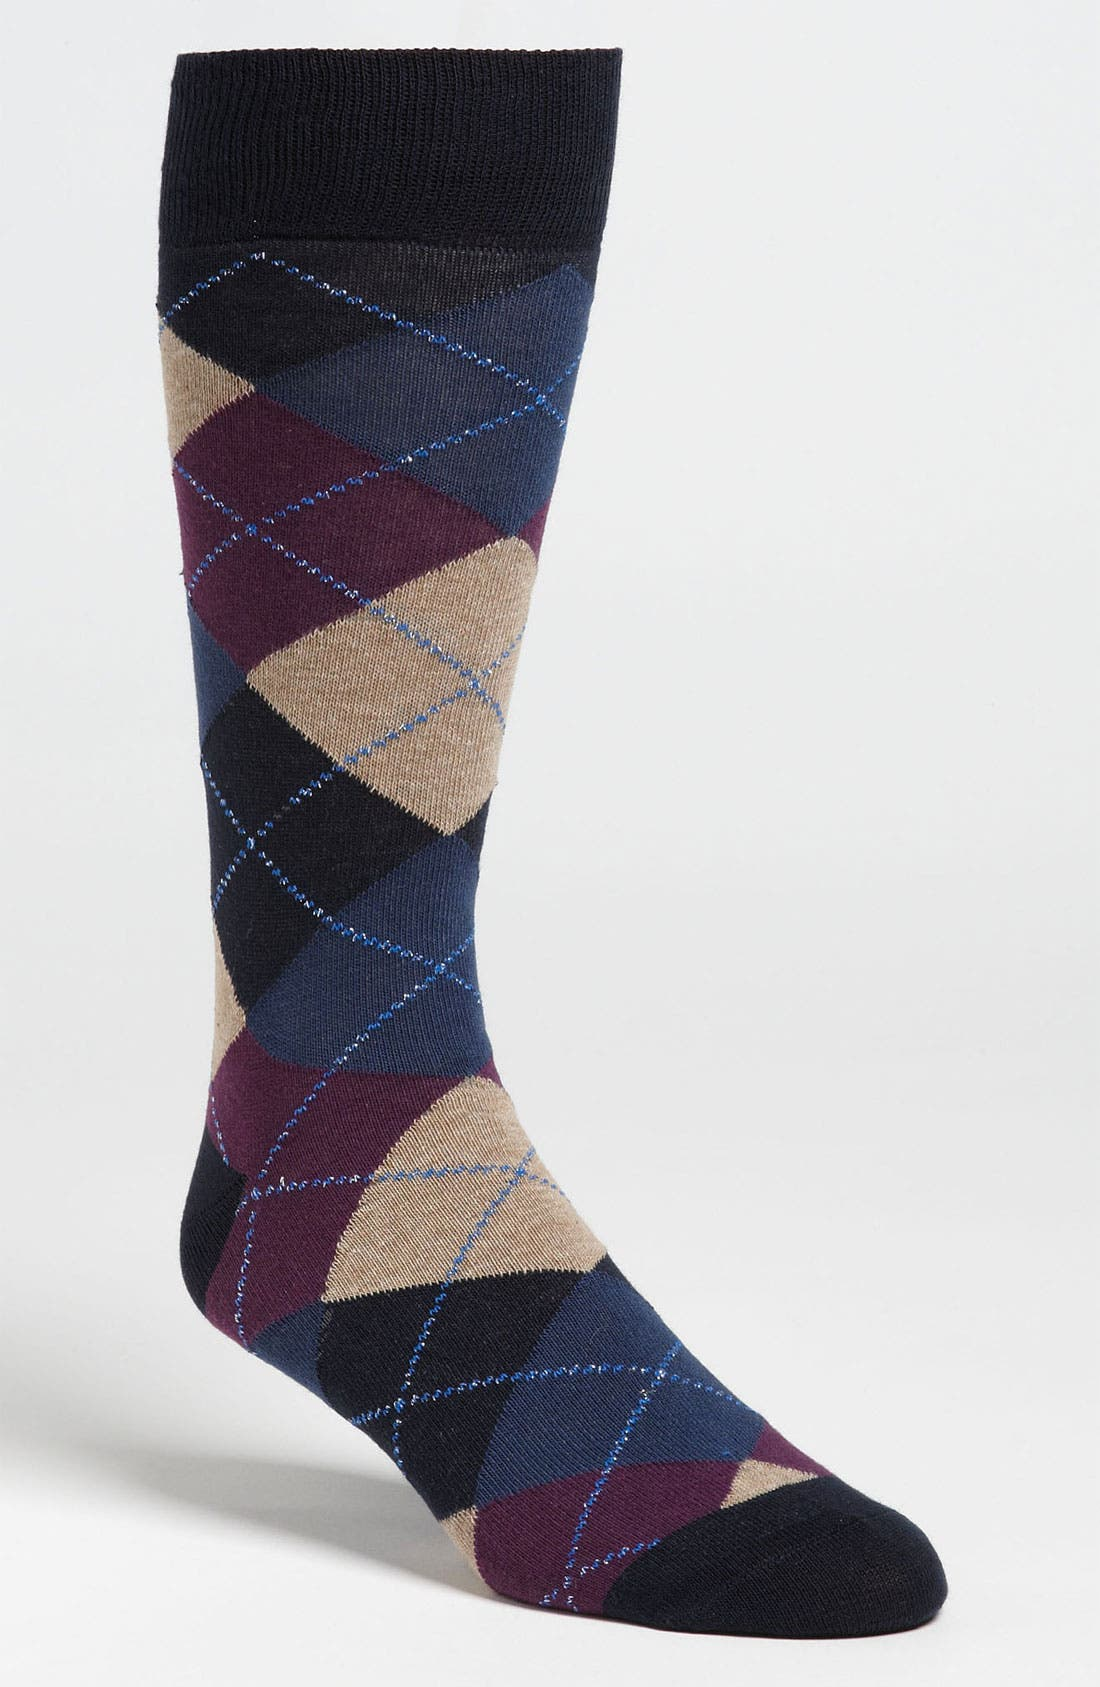 Alternate Image 1 Selected - Lorenzo Uomo Argyle Socks